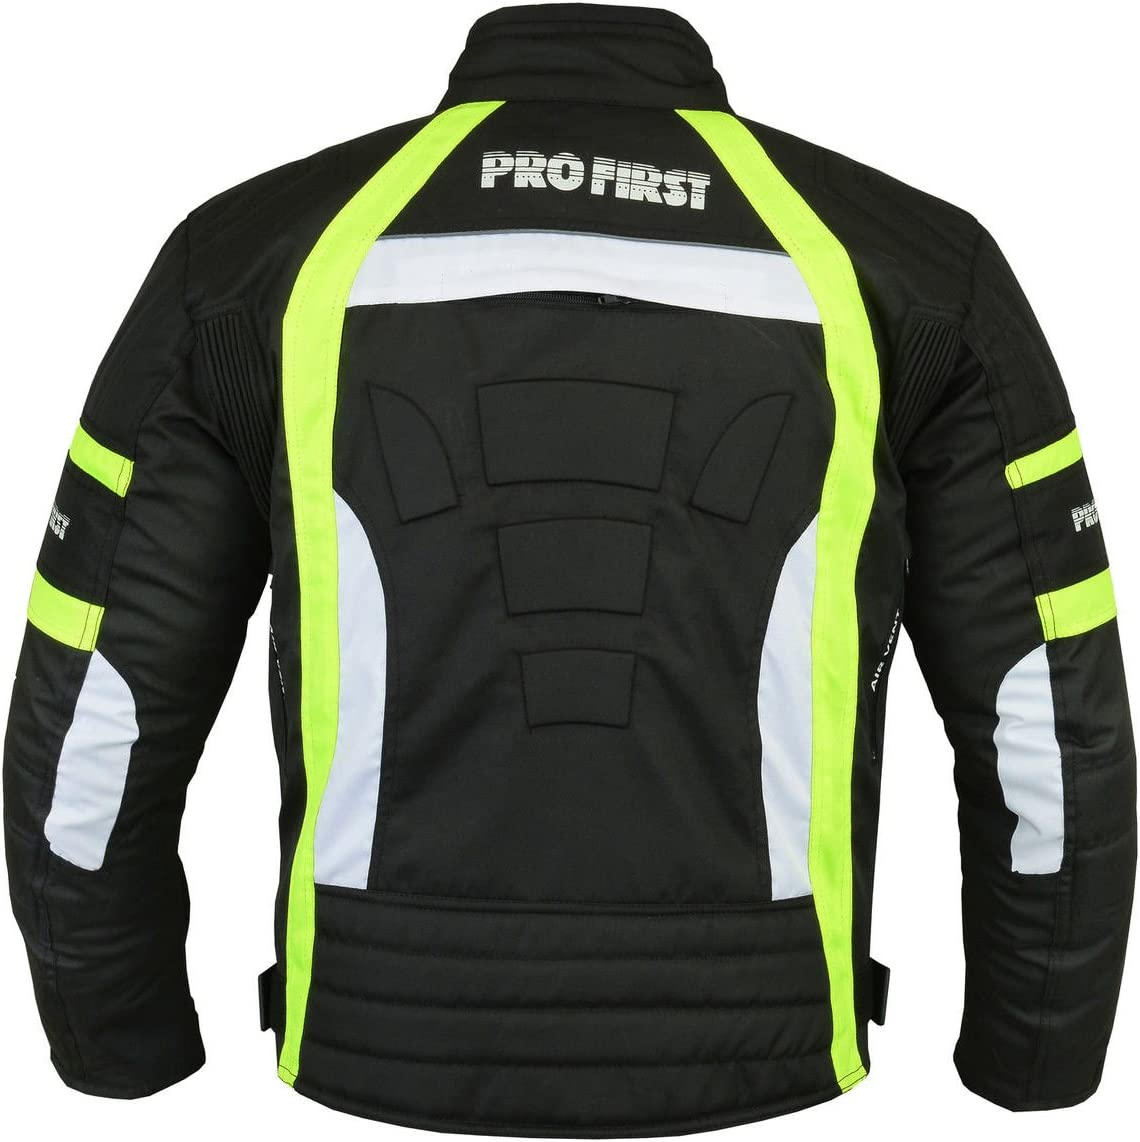 FREE BALACLAVA Trouser in Cordura Fabric and CE Approved Armour Black /& Green, Extra Small Waterproof Motorbike Motorcycle 2 Piece Full Suit Jacket 6 Packs Design Most Popular